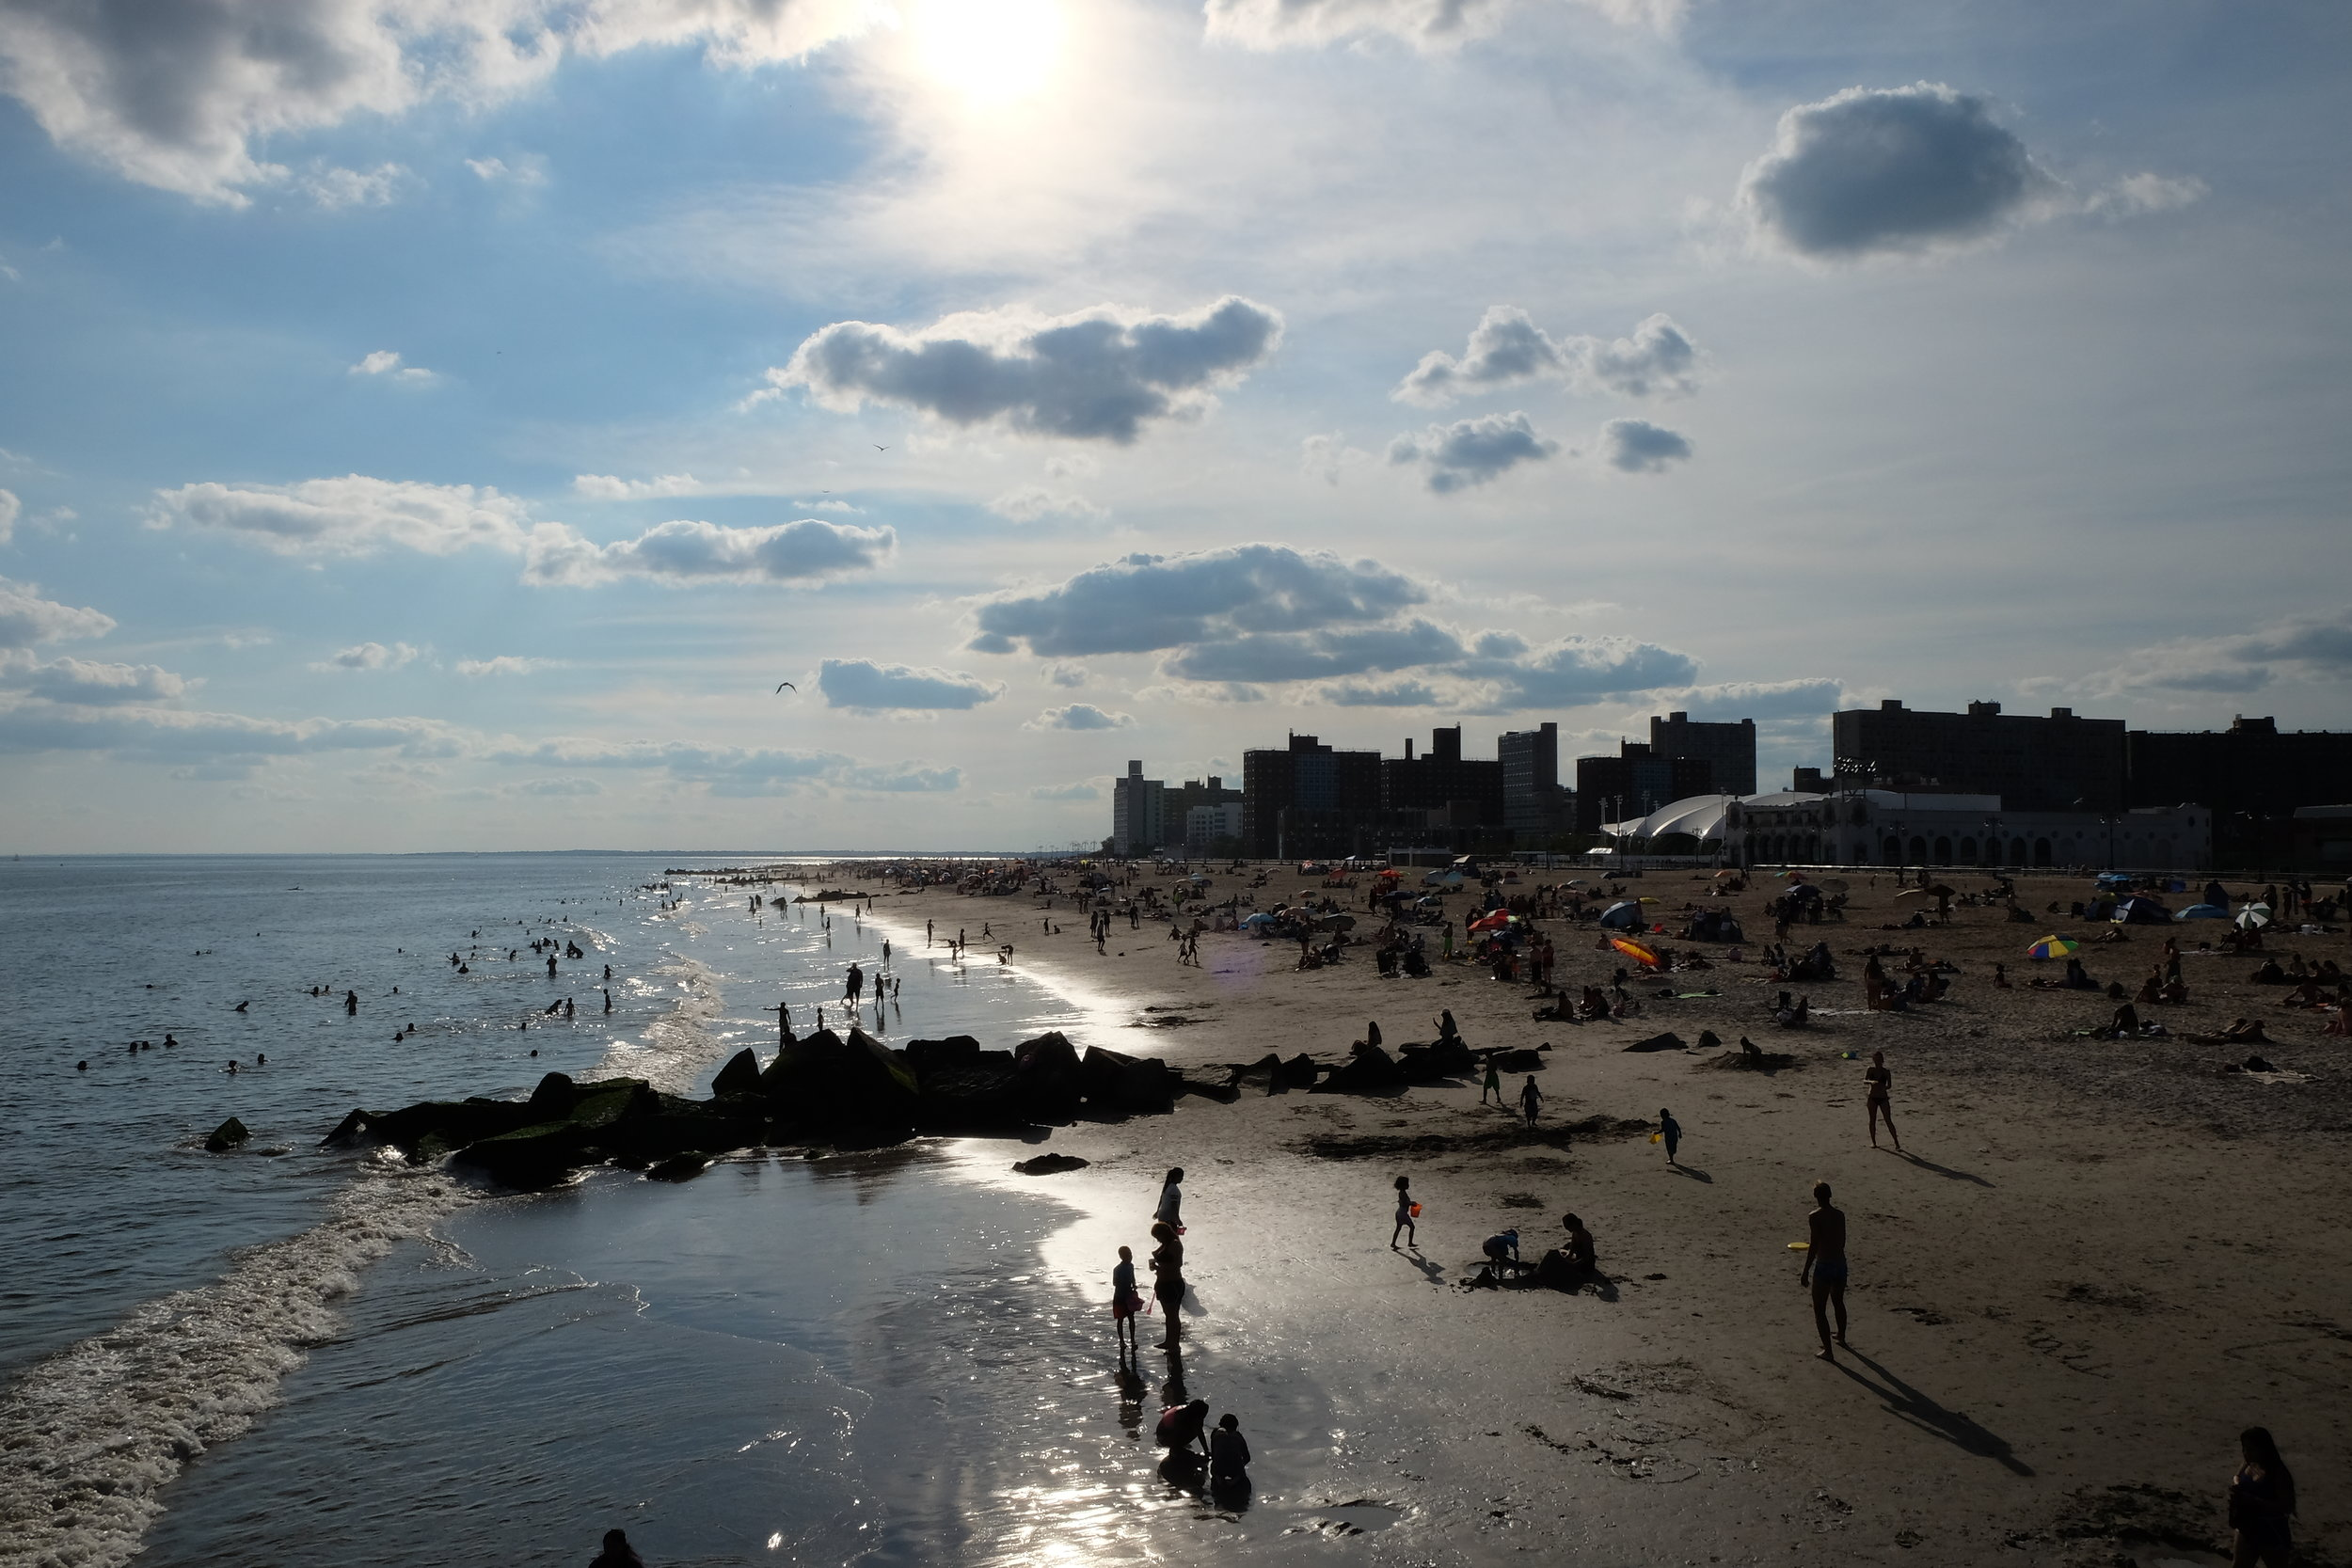 Coney Island - The View from the New Pier